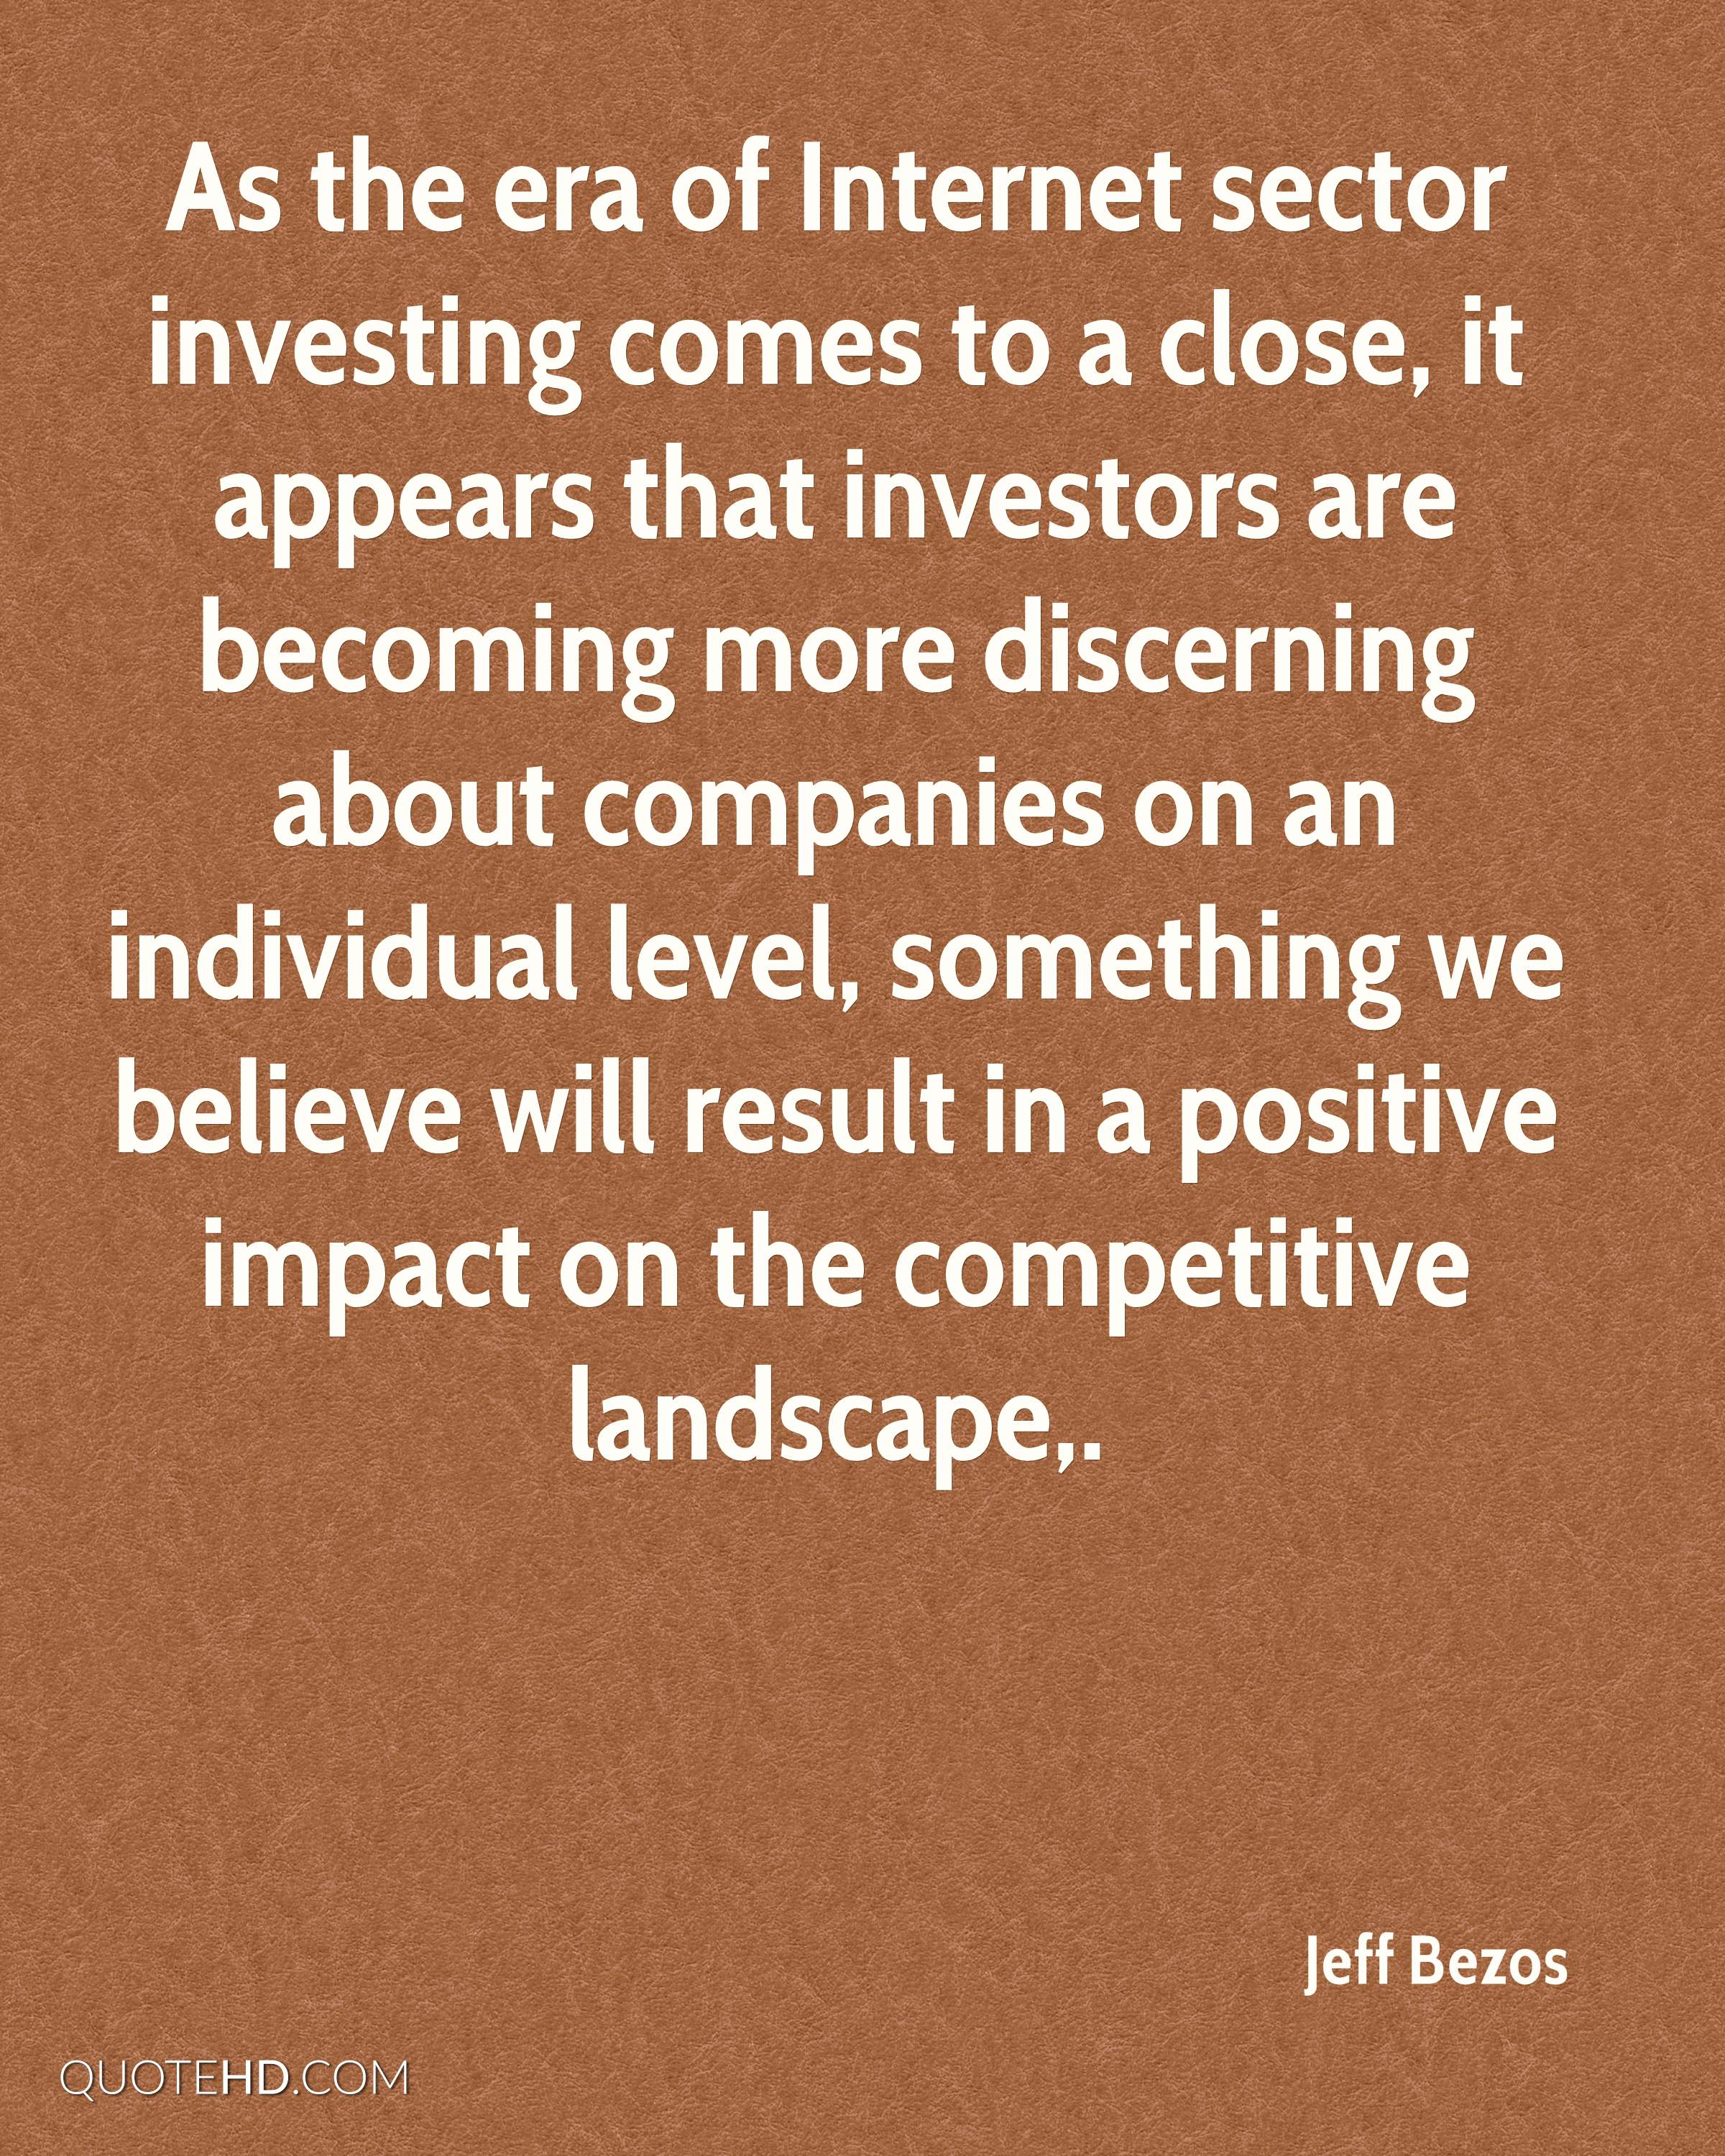 As the era of Internet sector investing comes to a close, it appears that investors are becoming more discerning about companies on an individual level, something we believe will result in a positive impact on the competitive landscape.